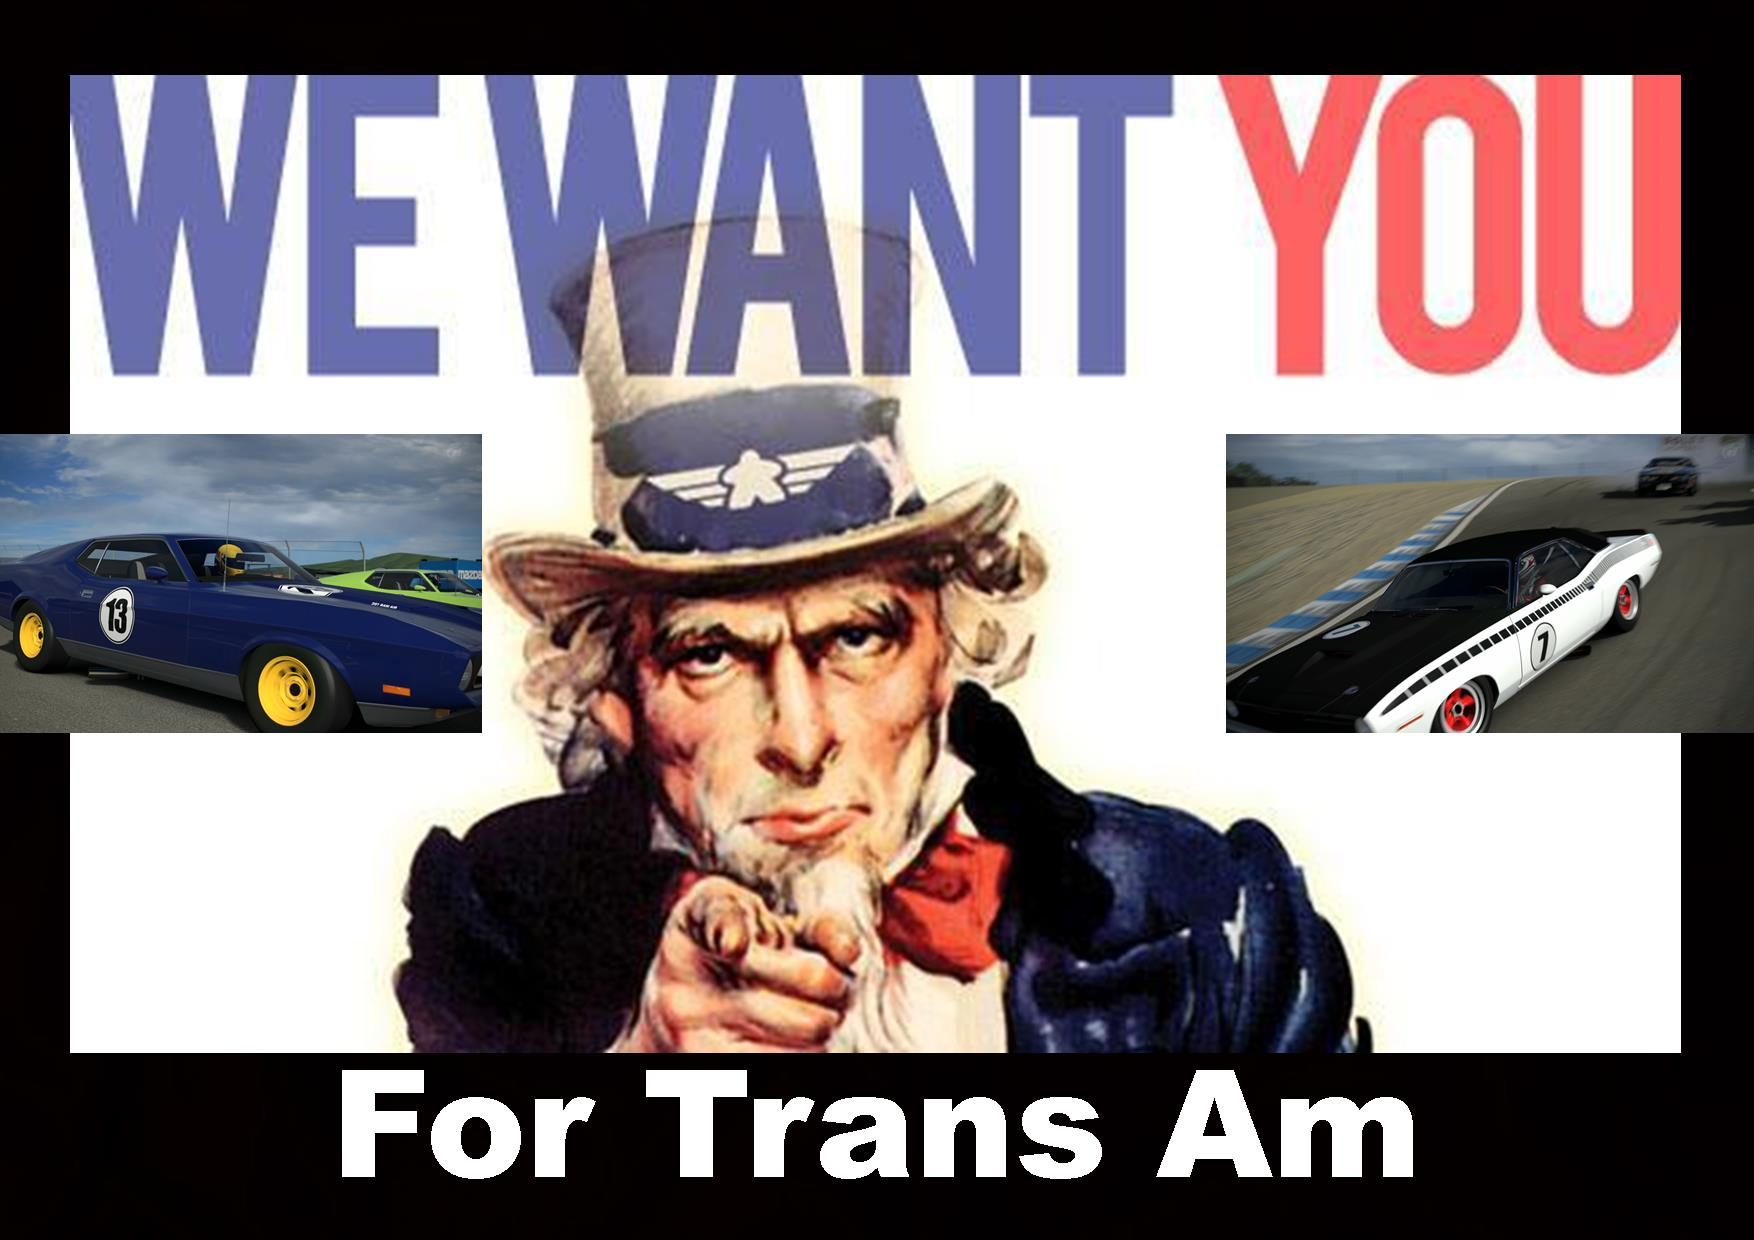 We want you TA Poster.jpg